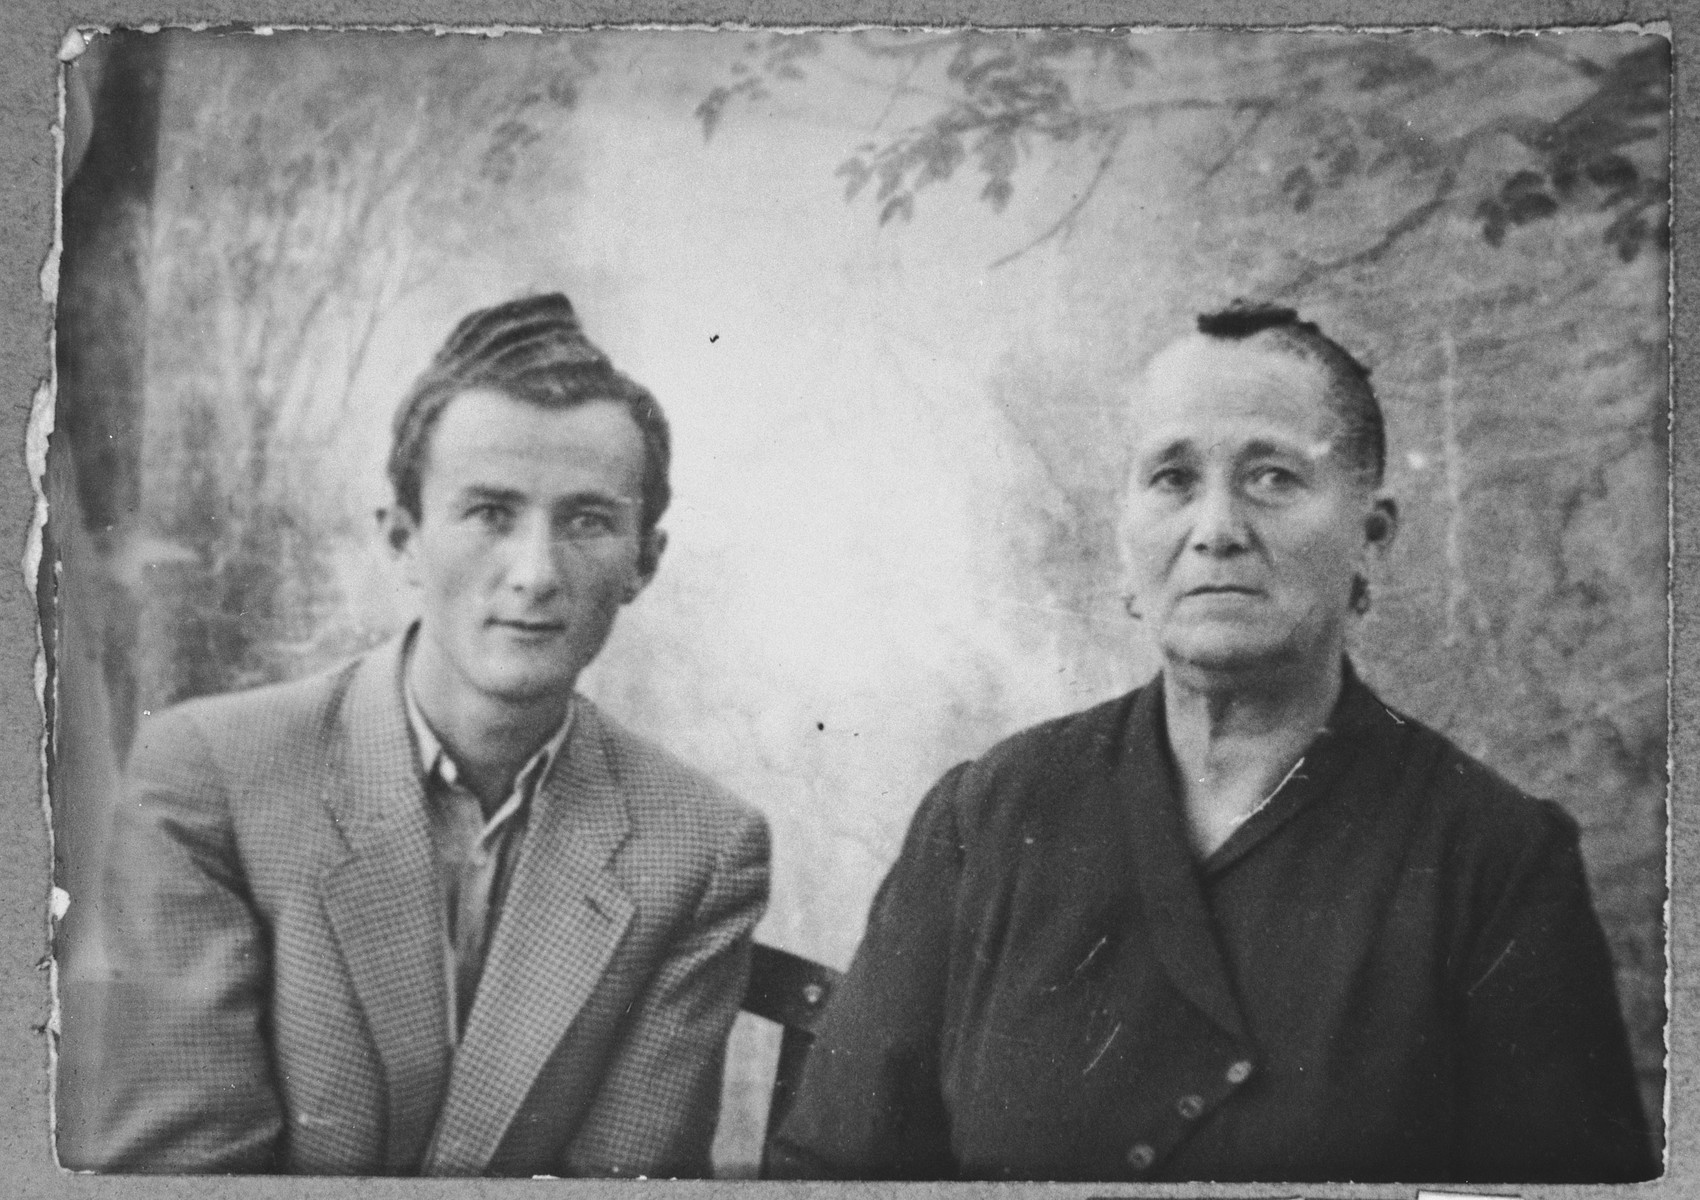 Portrait of Hana Honen, wife of Samuel Honen, and Samuel's son, Yakov.  Yakov was a student.  They lived at Orizarska 8 in Bitola.